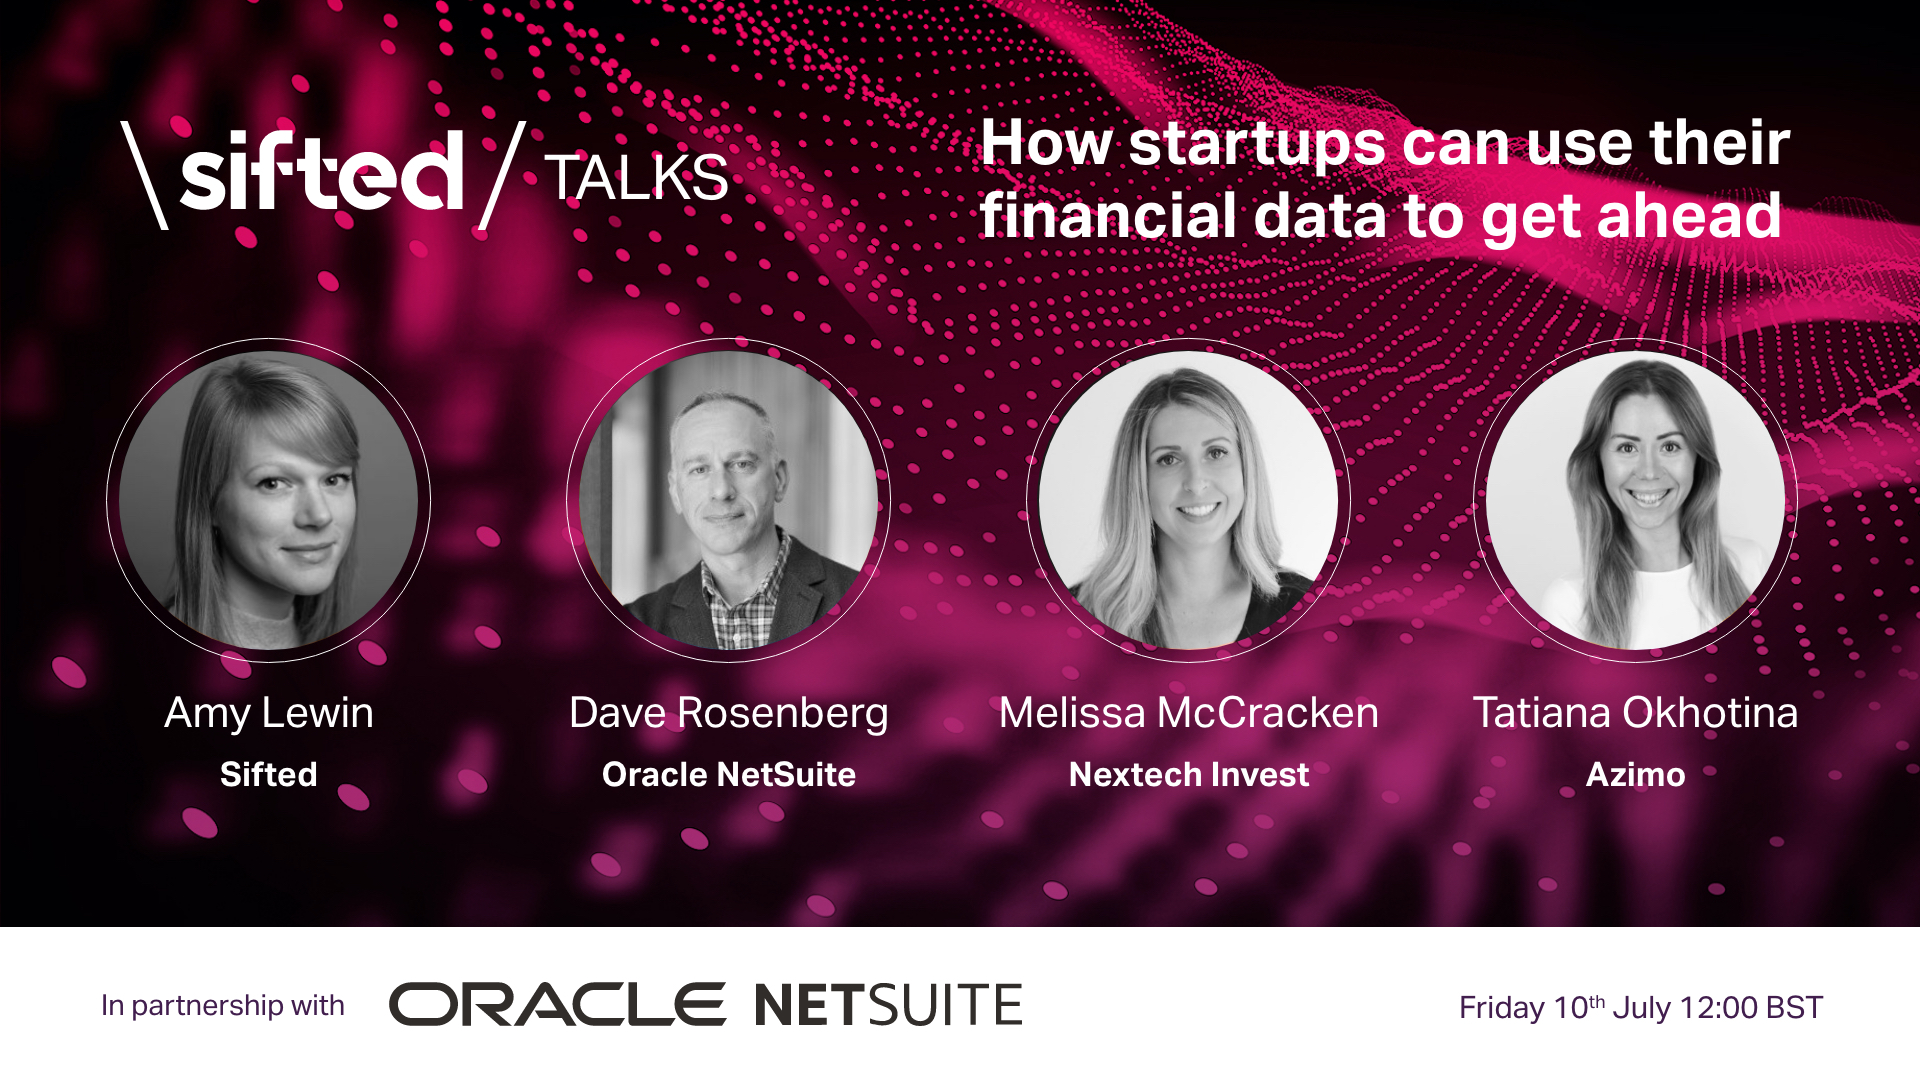 How startups can use their financial data to get ahead event promo image